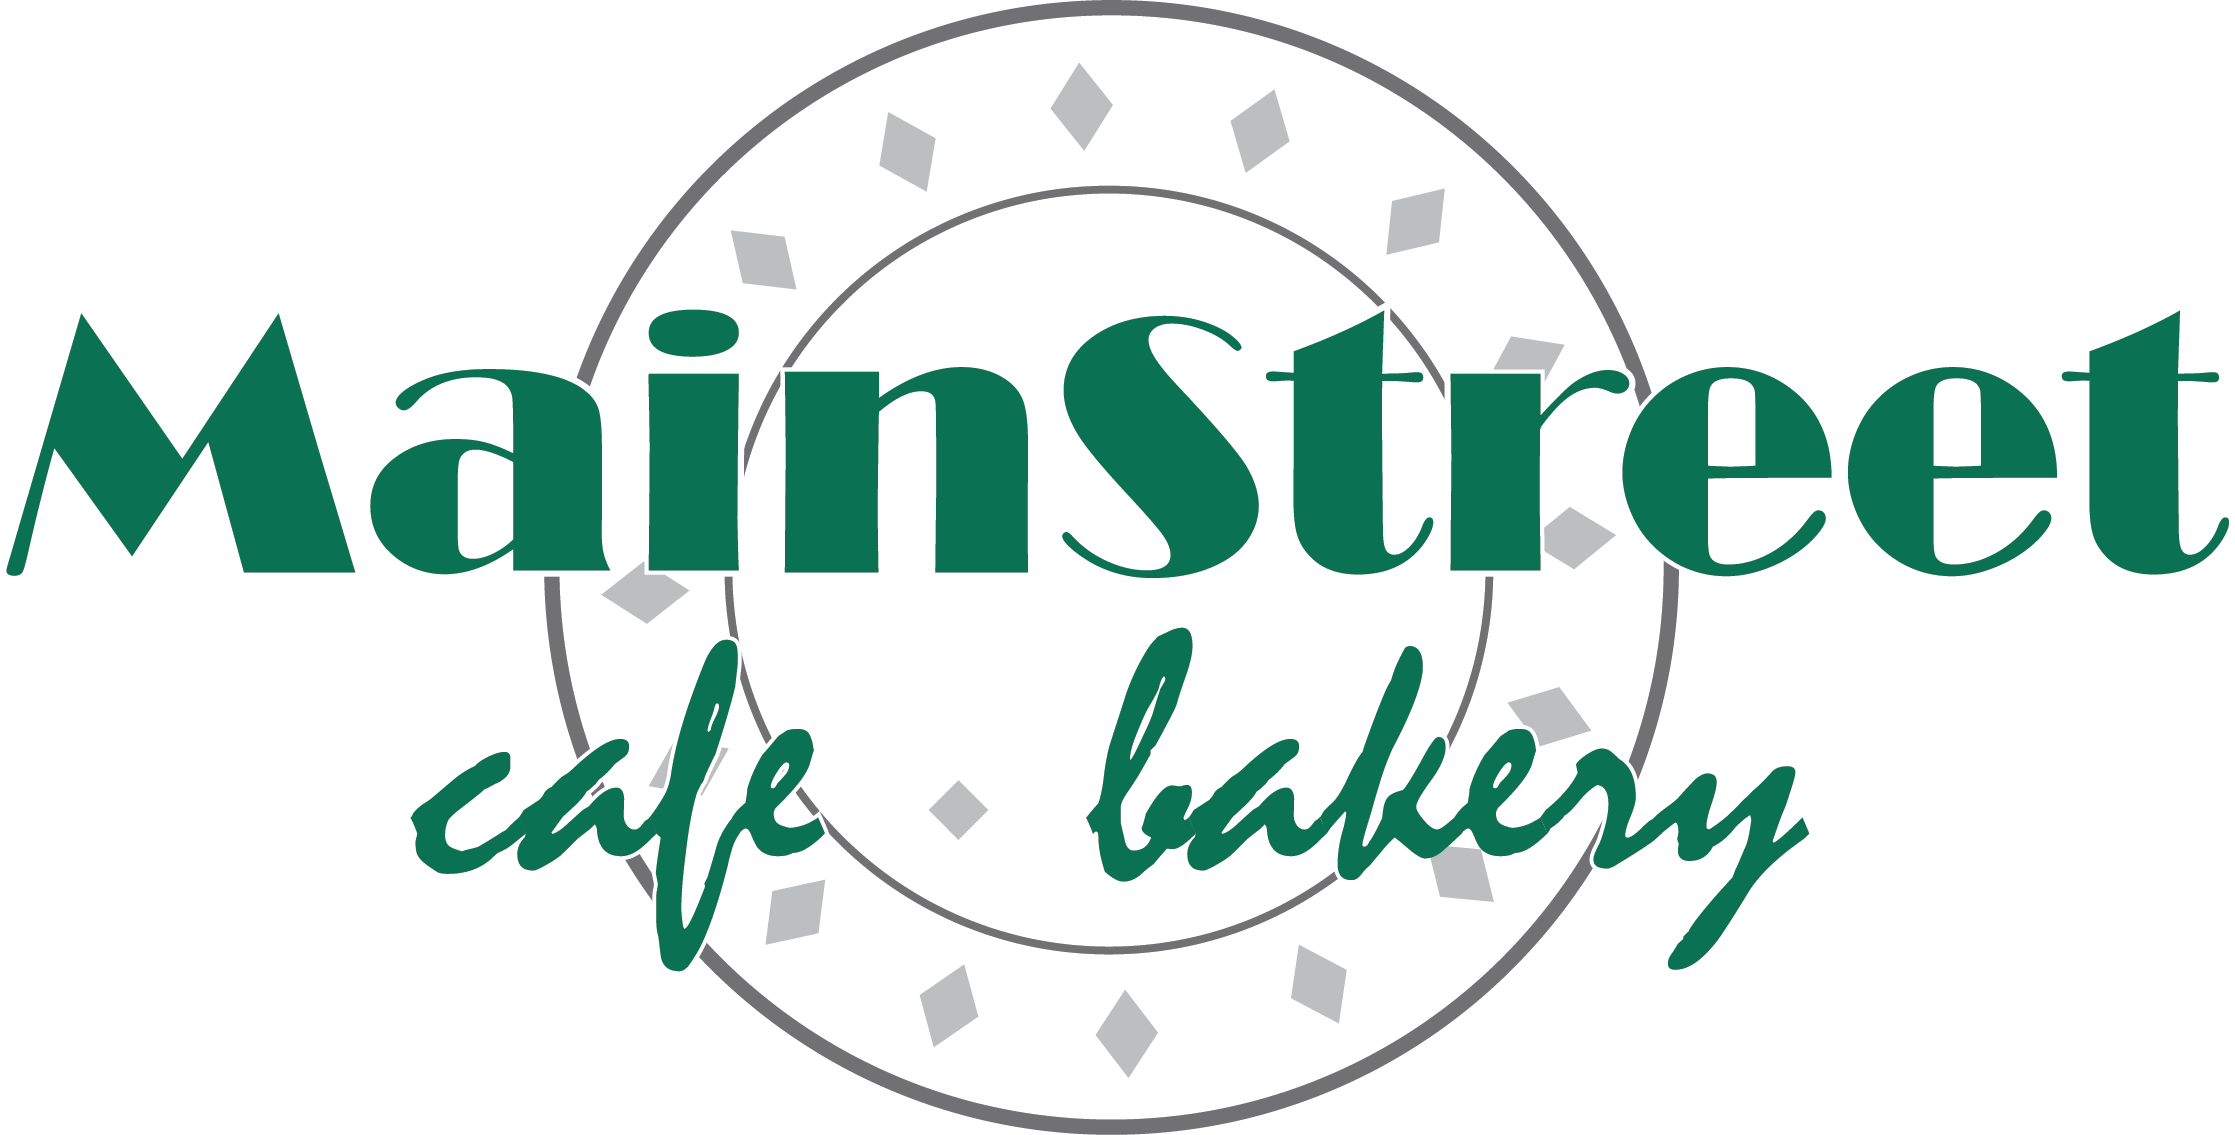 MainStreetLogo-with bigger stroke and white circle Full Opacity Full Circle.png